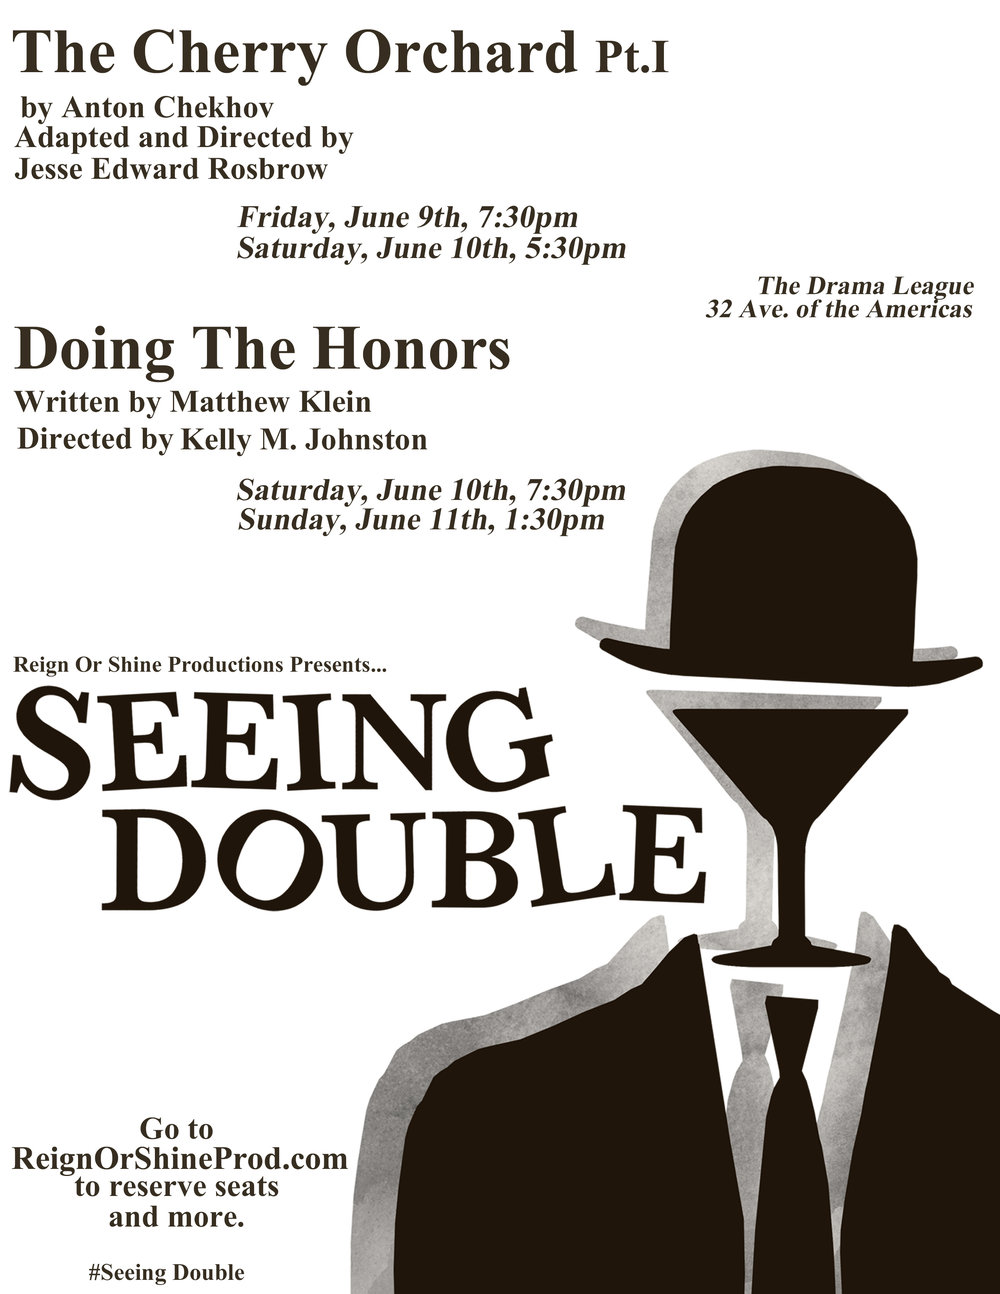 Seeing Doible Poster Designed by Lauren McCune and Lauren Hubbard